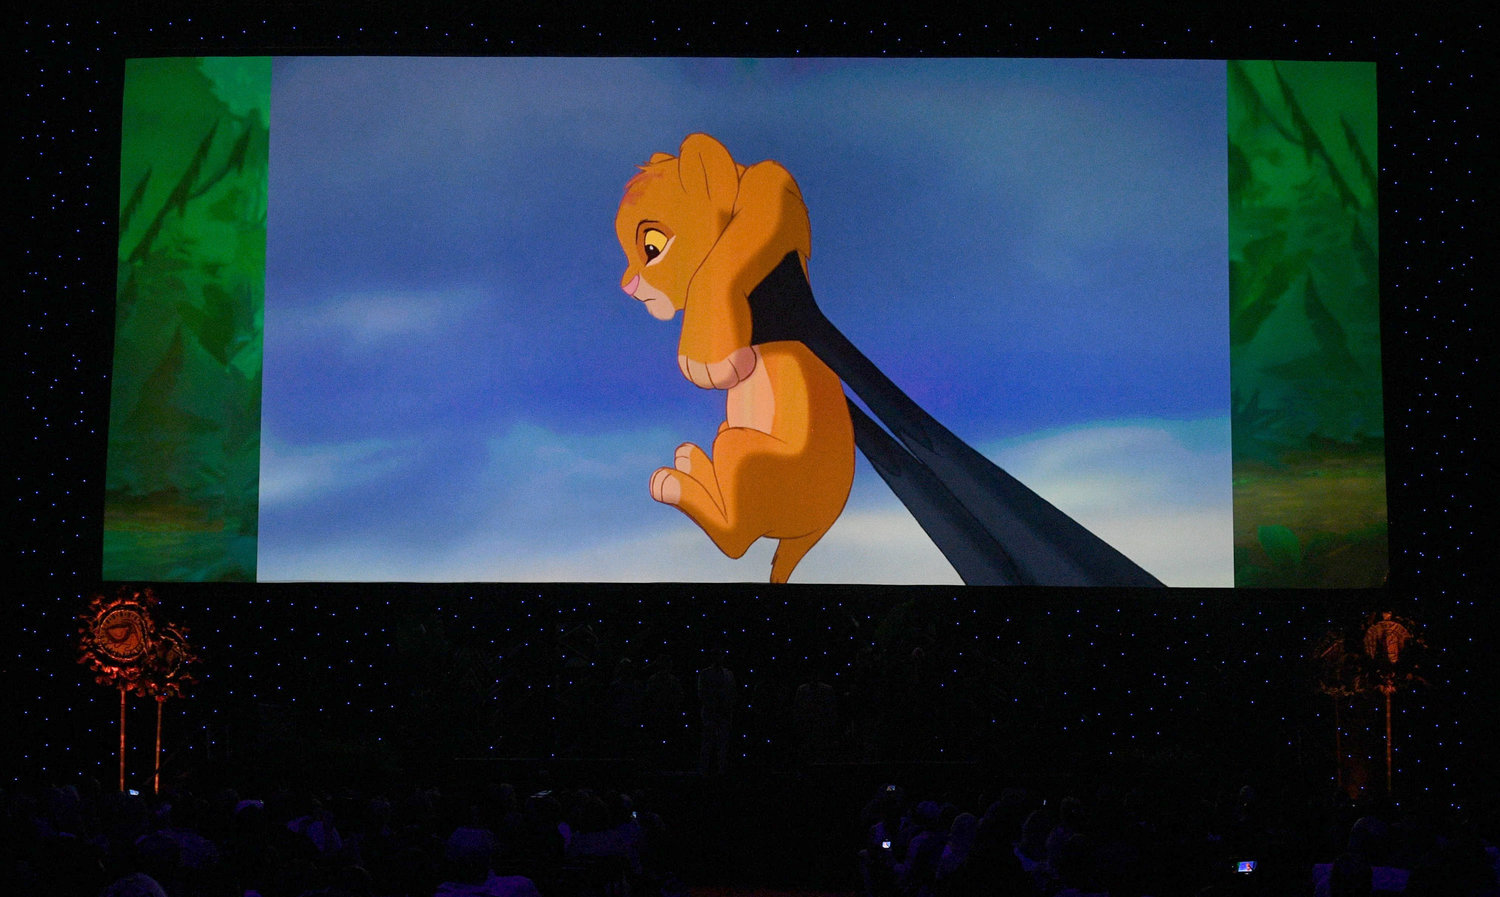 'Lion King' Live-Action Film's Opening Scene Shown at D23!